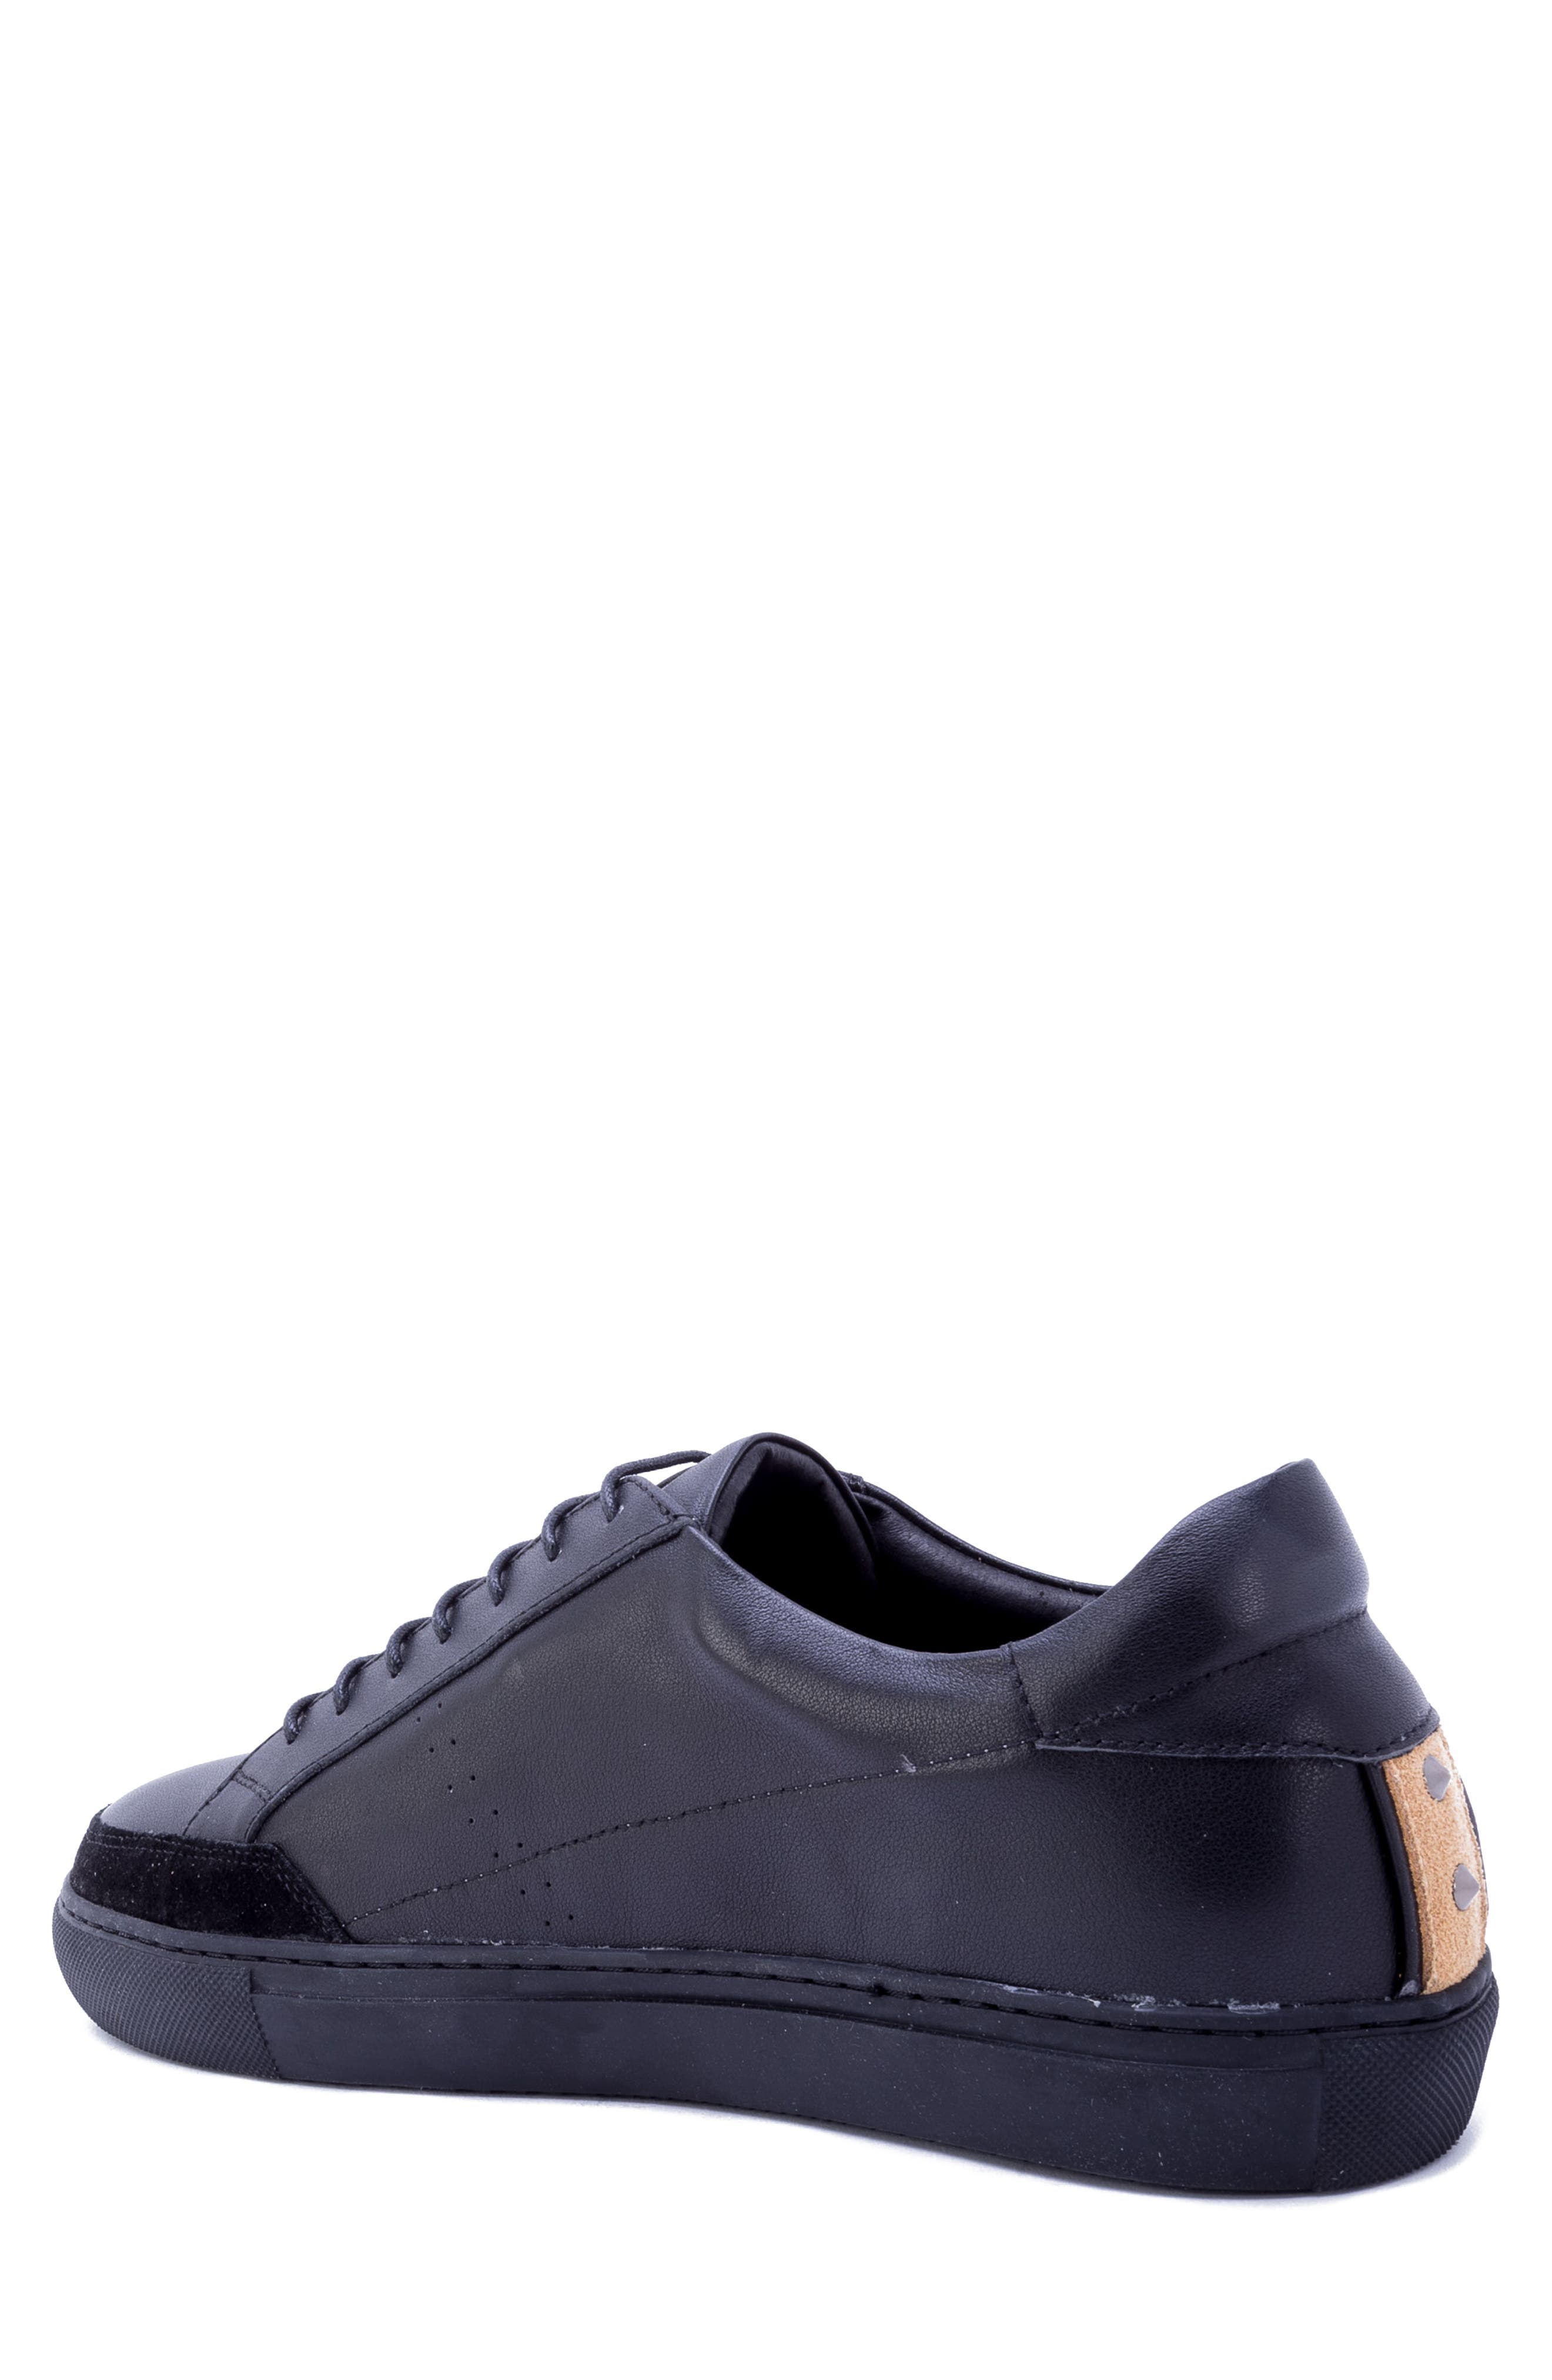 Badgley Mischka Connery Sneaker,                             Alternate thumbnail 2, color,                             BLACK LEATHER